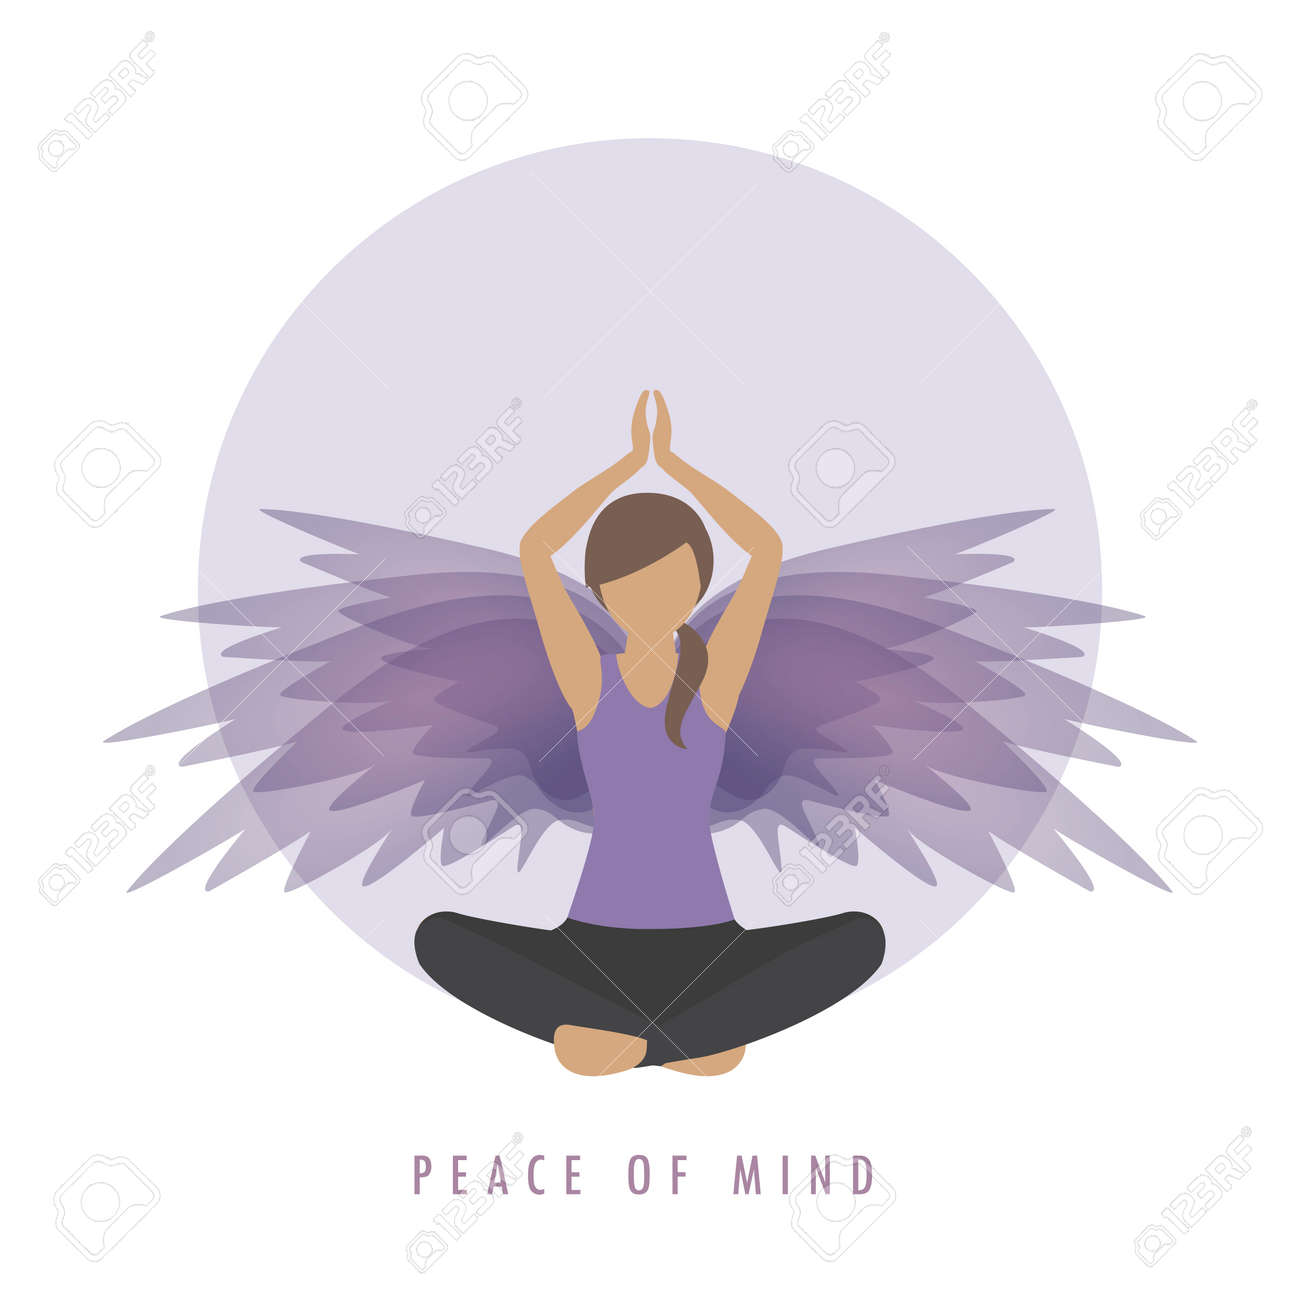 peace of mind girl in meditation pose with wings - 167505113